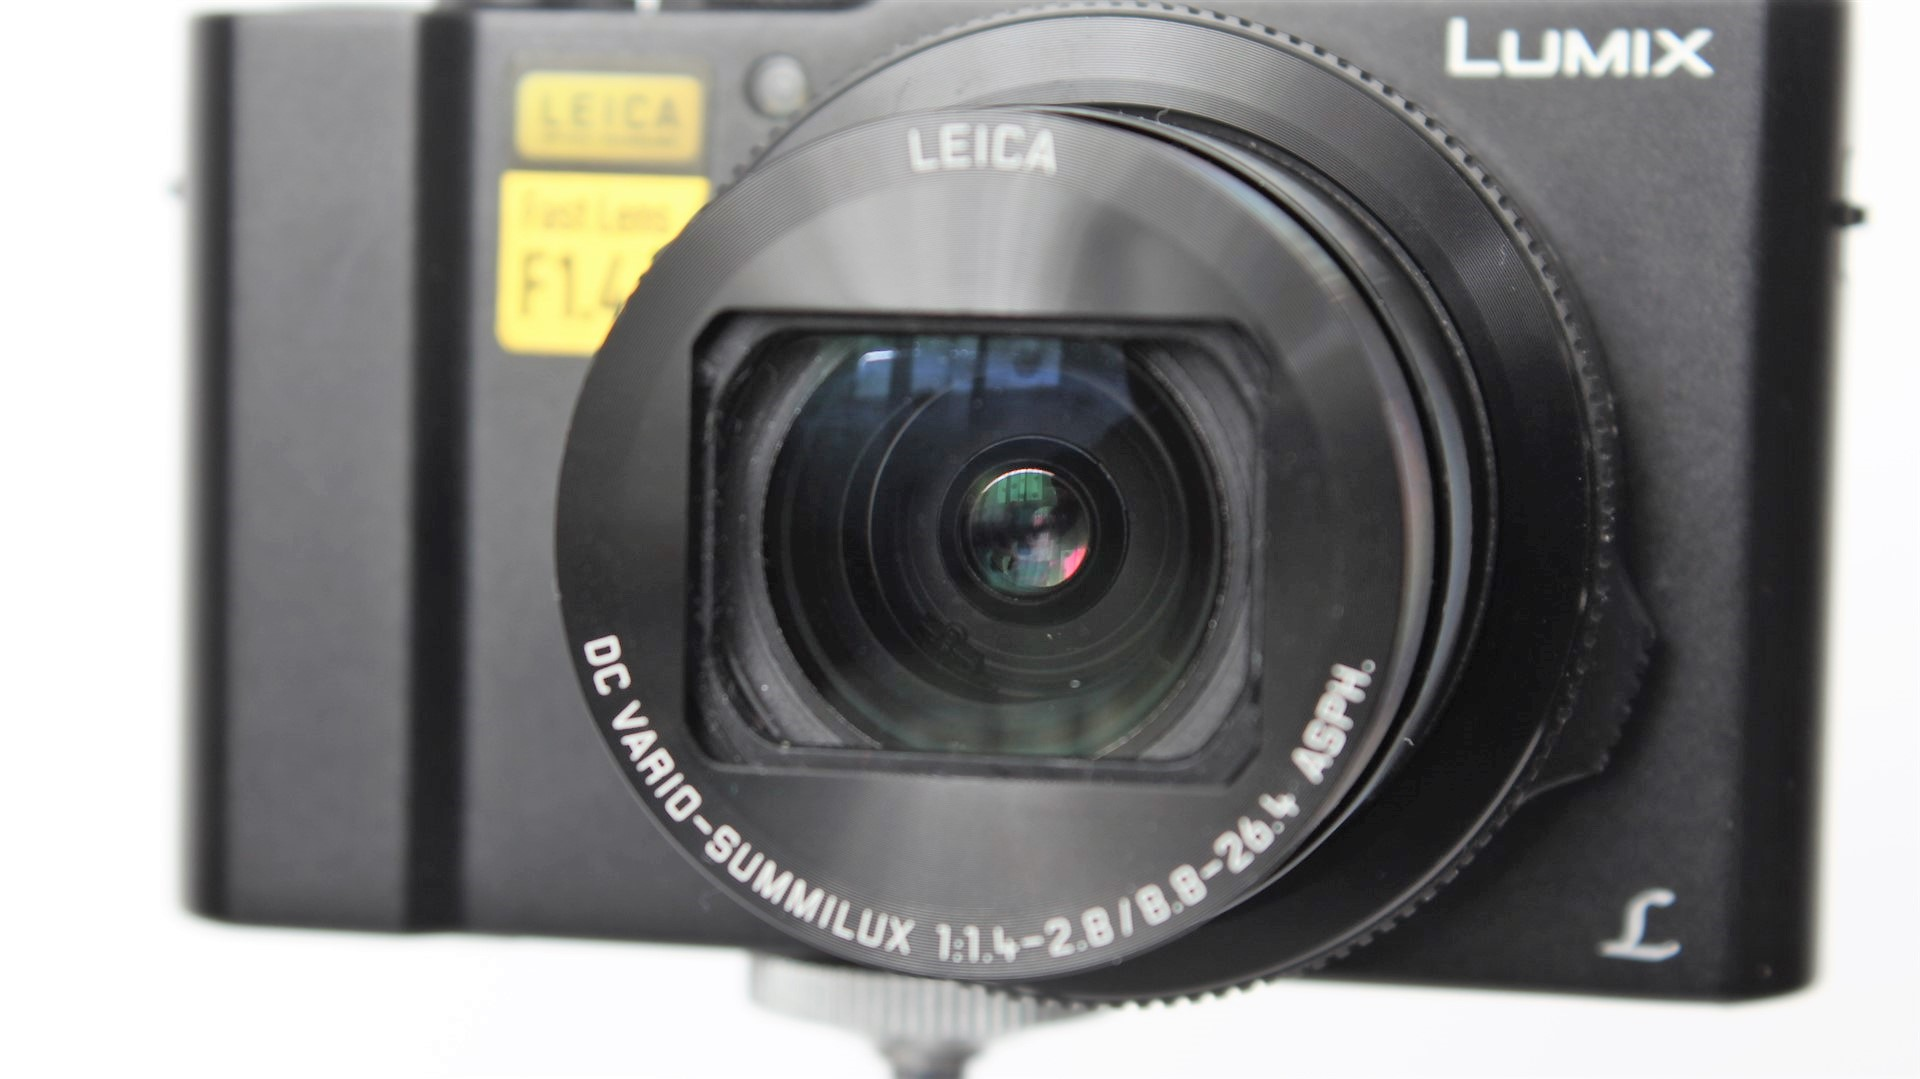 lumix camera hi tech - photo #16